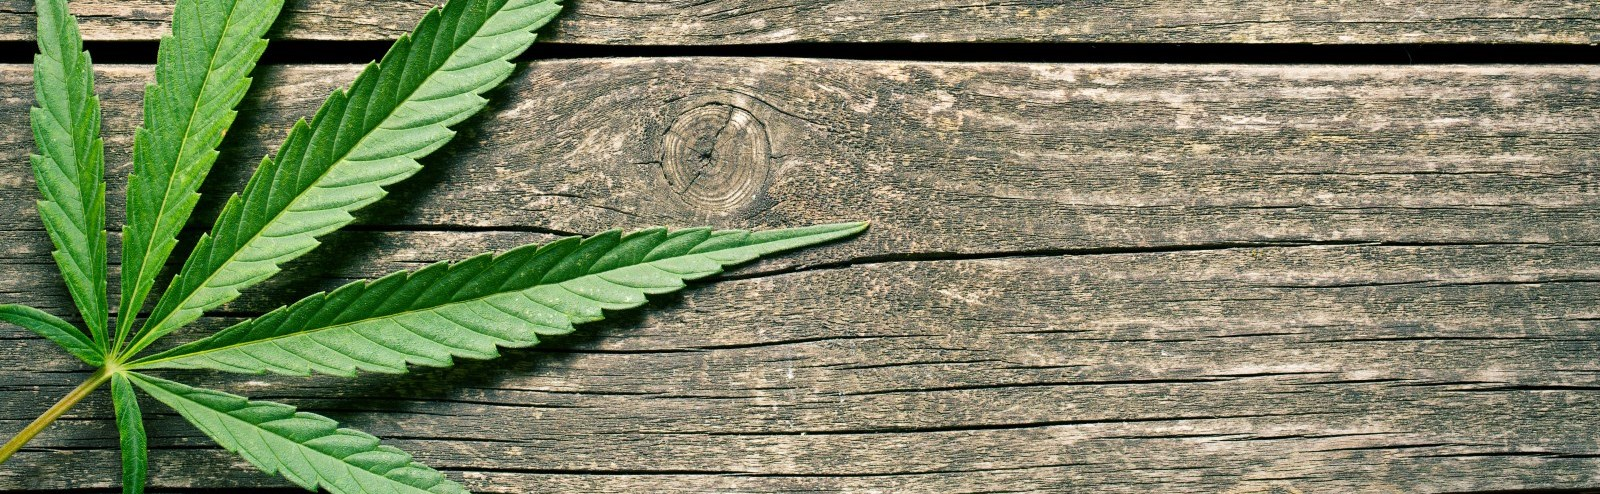 Cannabis leaf on wooden background